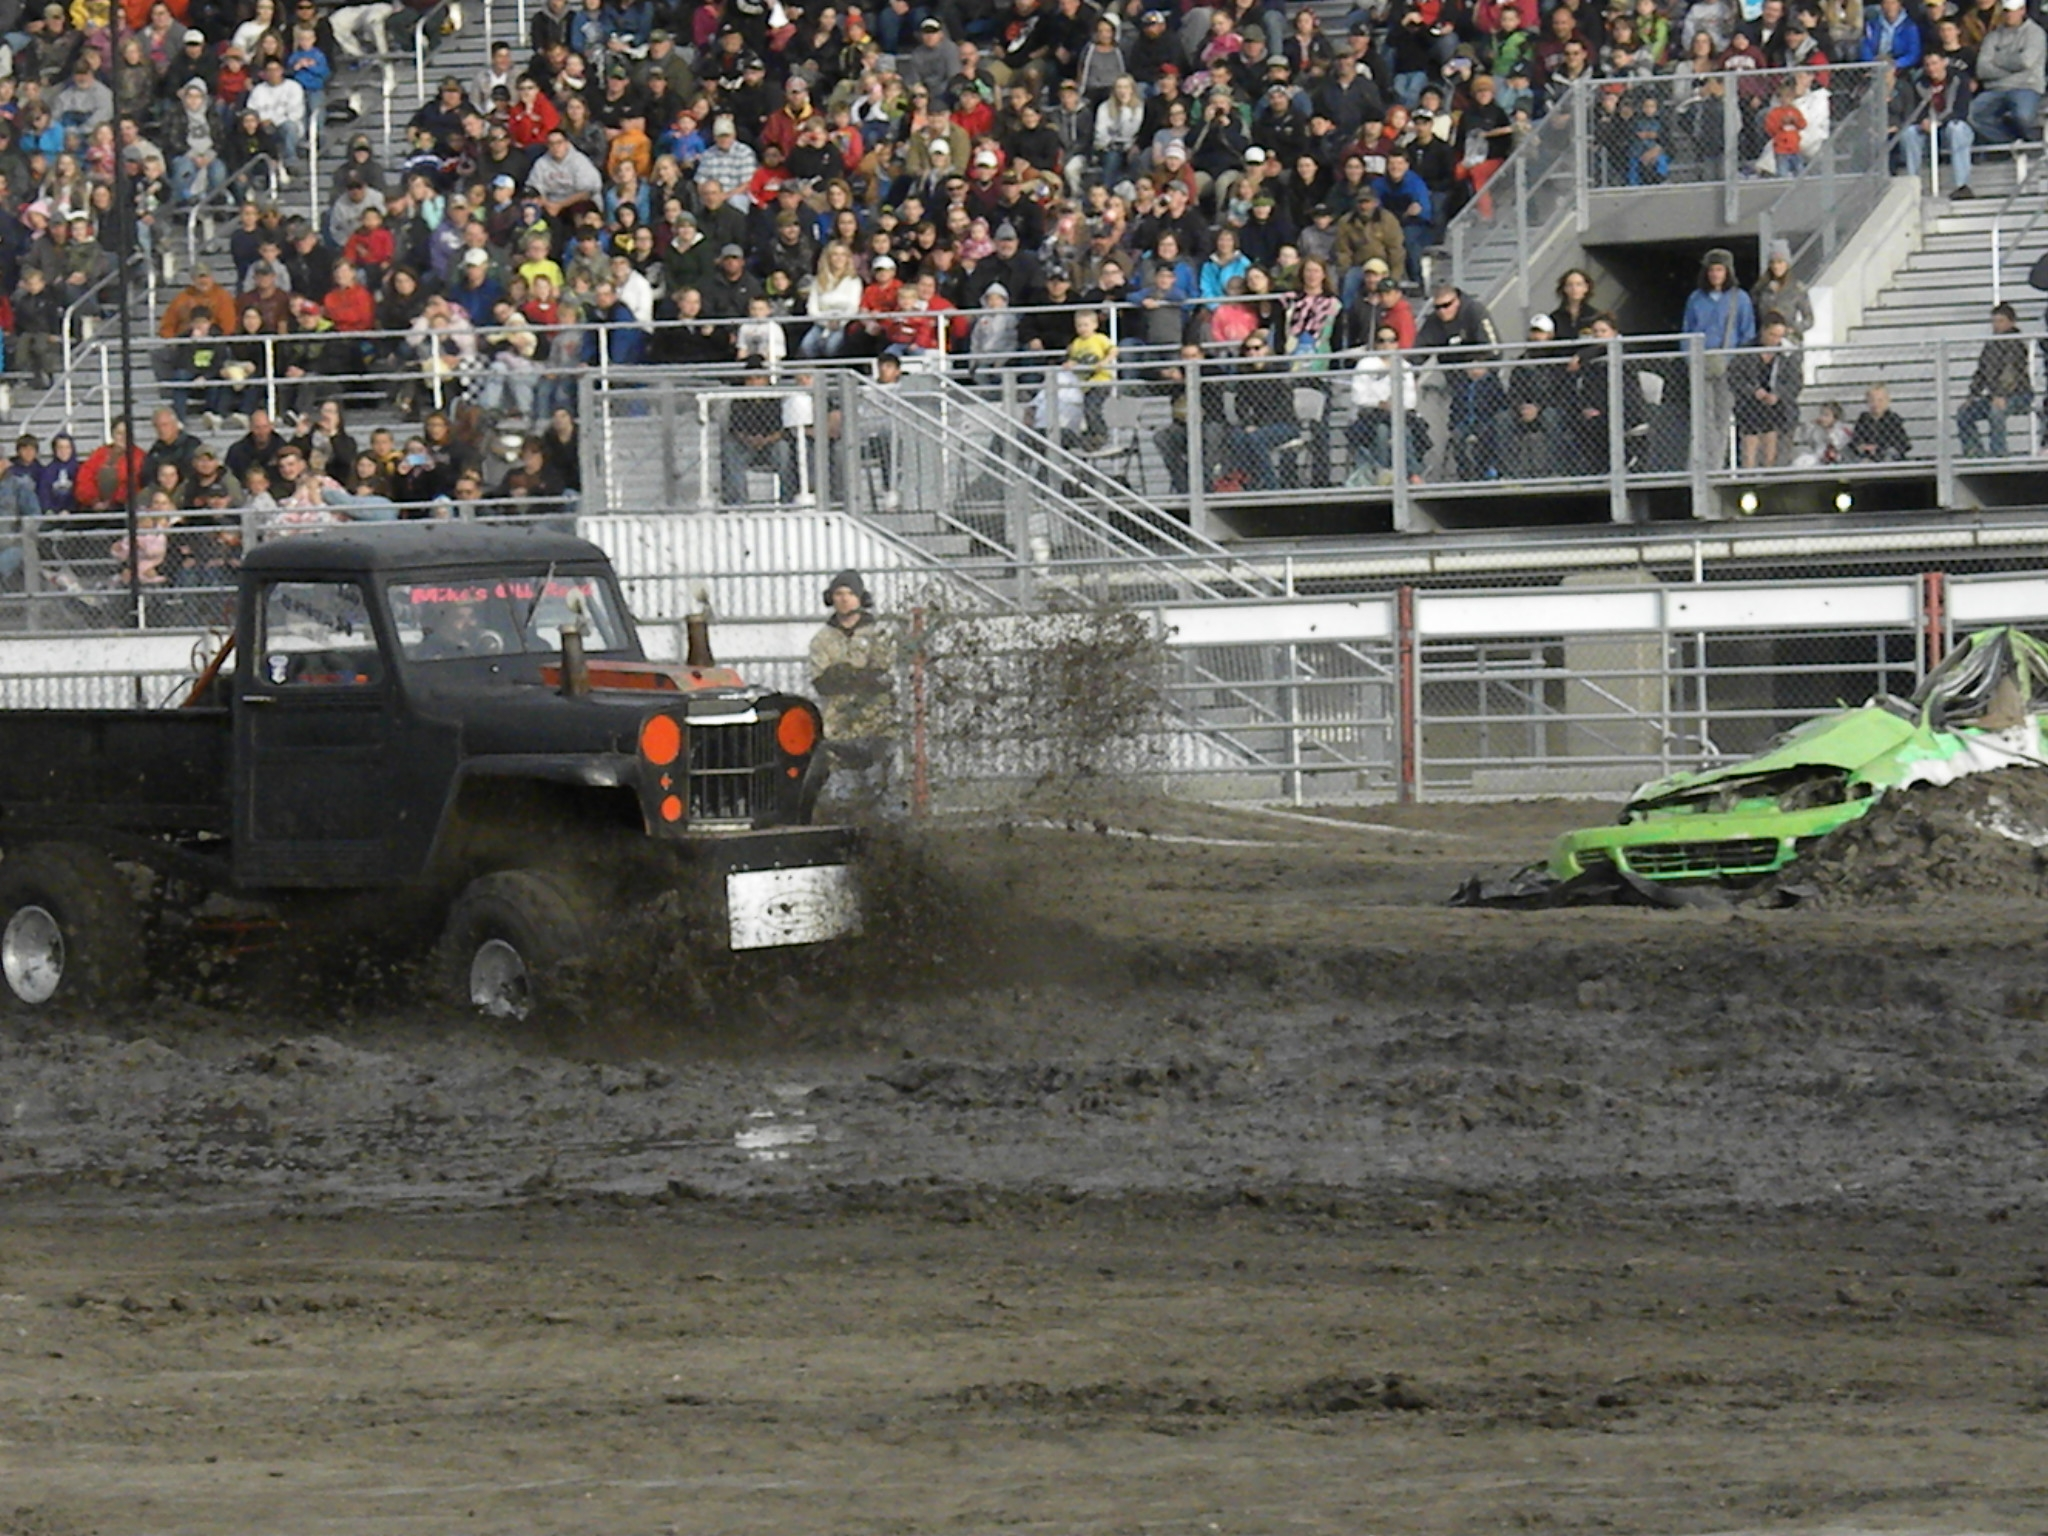 Mud Drags Nebraska Mud Drags New Event This Year